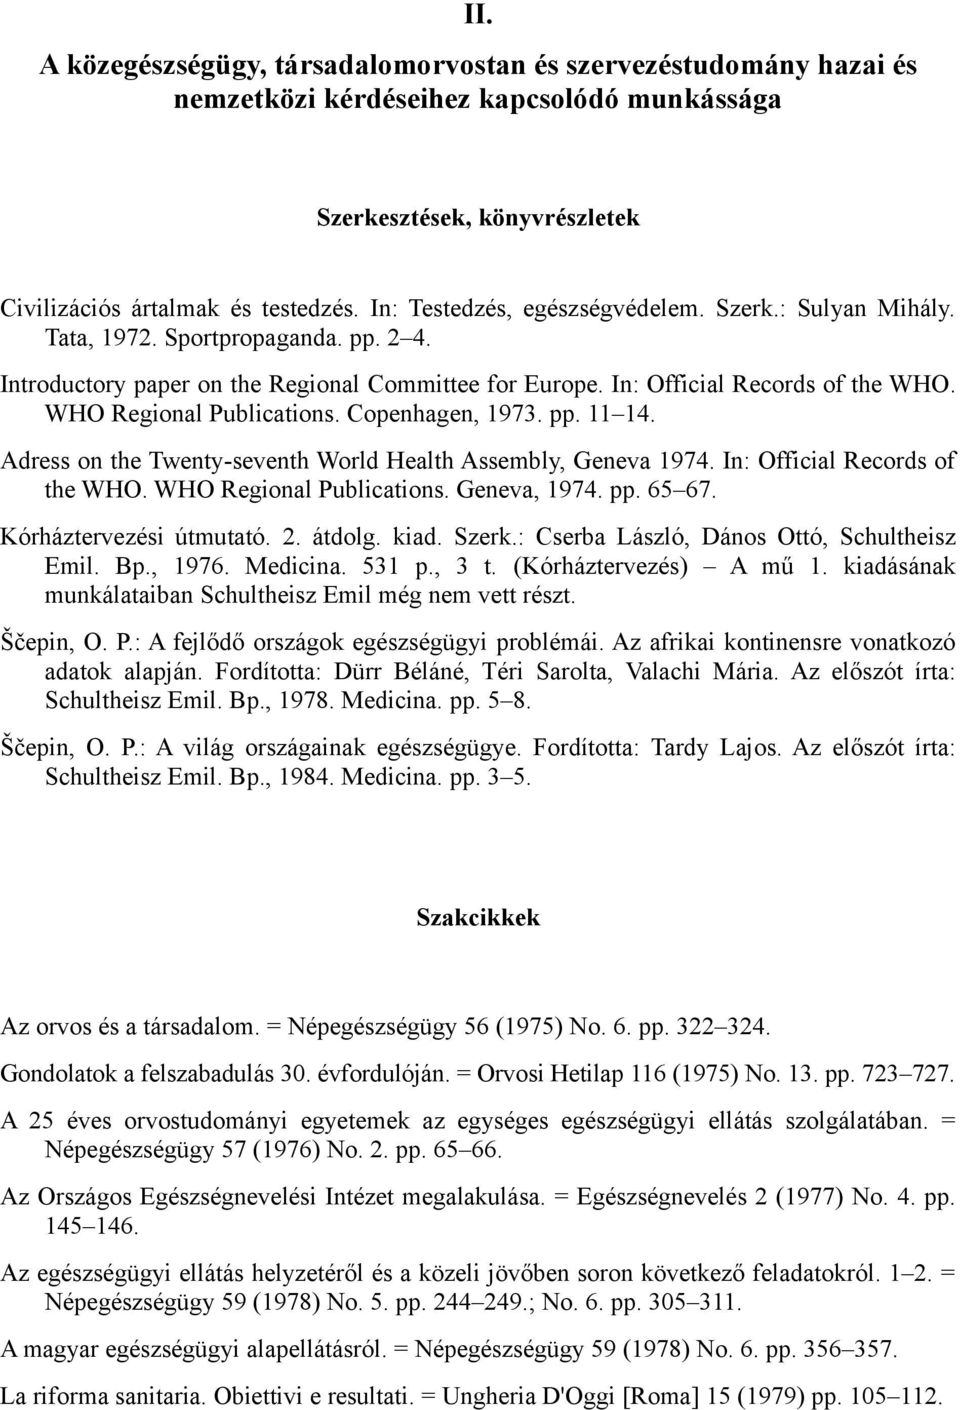 WHO Regional Publications. Copenhagen, 1973. pp. 11 14. Adress on the Twenty-seventh World Health Assembly, Geneva 1974. In: Official Records of the WHO. WHO Regional Publications. Geneva, 1974. pp. 65 67.